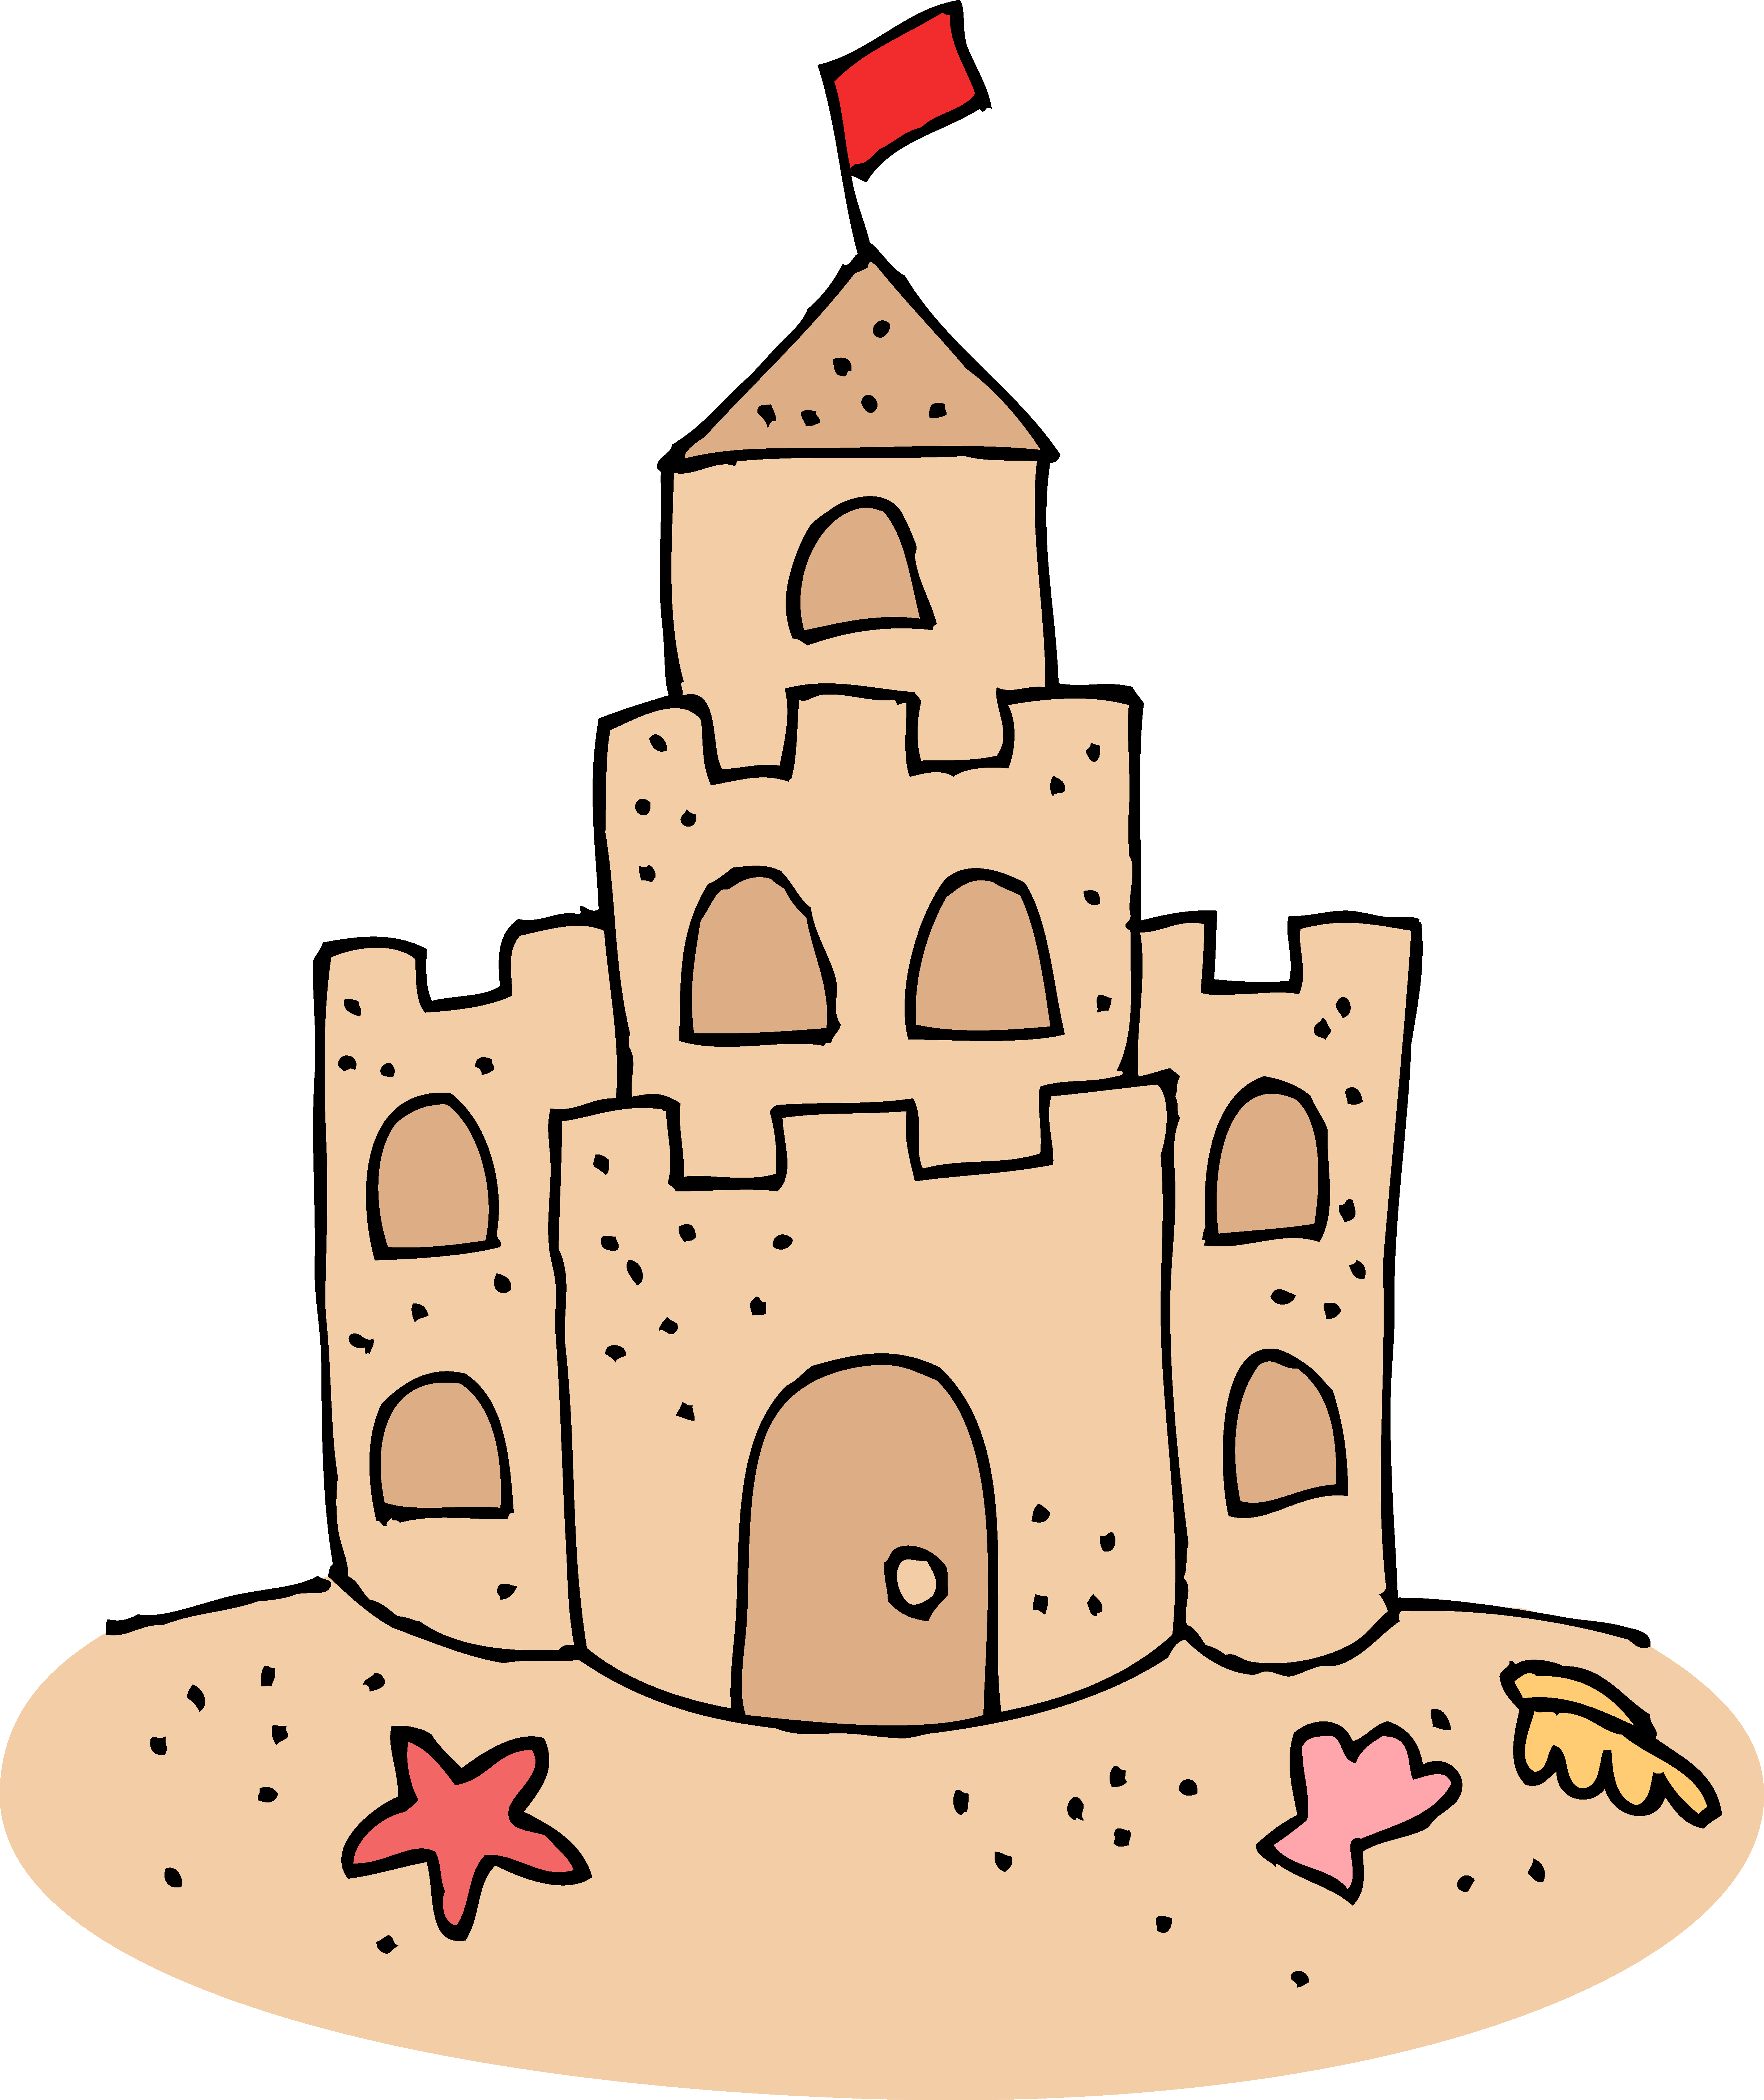 Pictures of cartoon castles. Friendly clipart co education